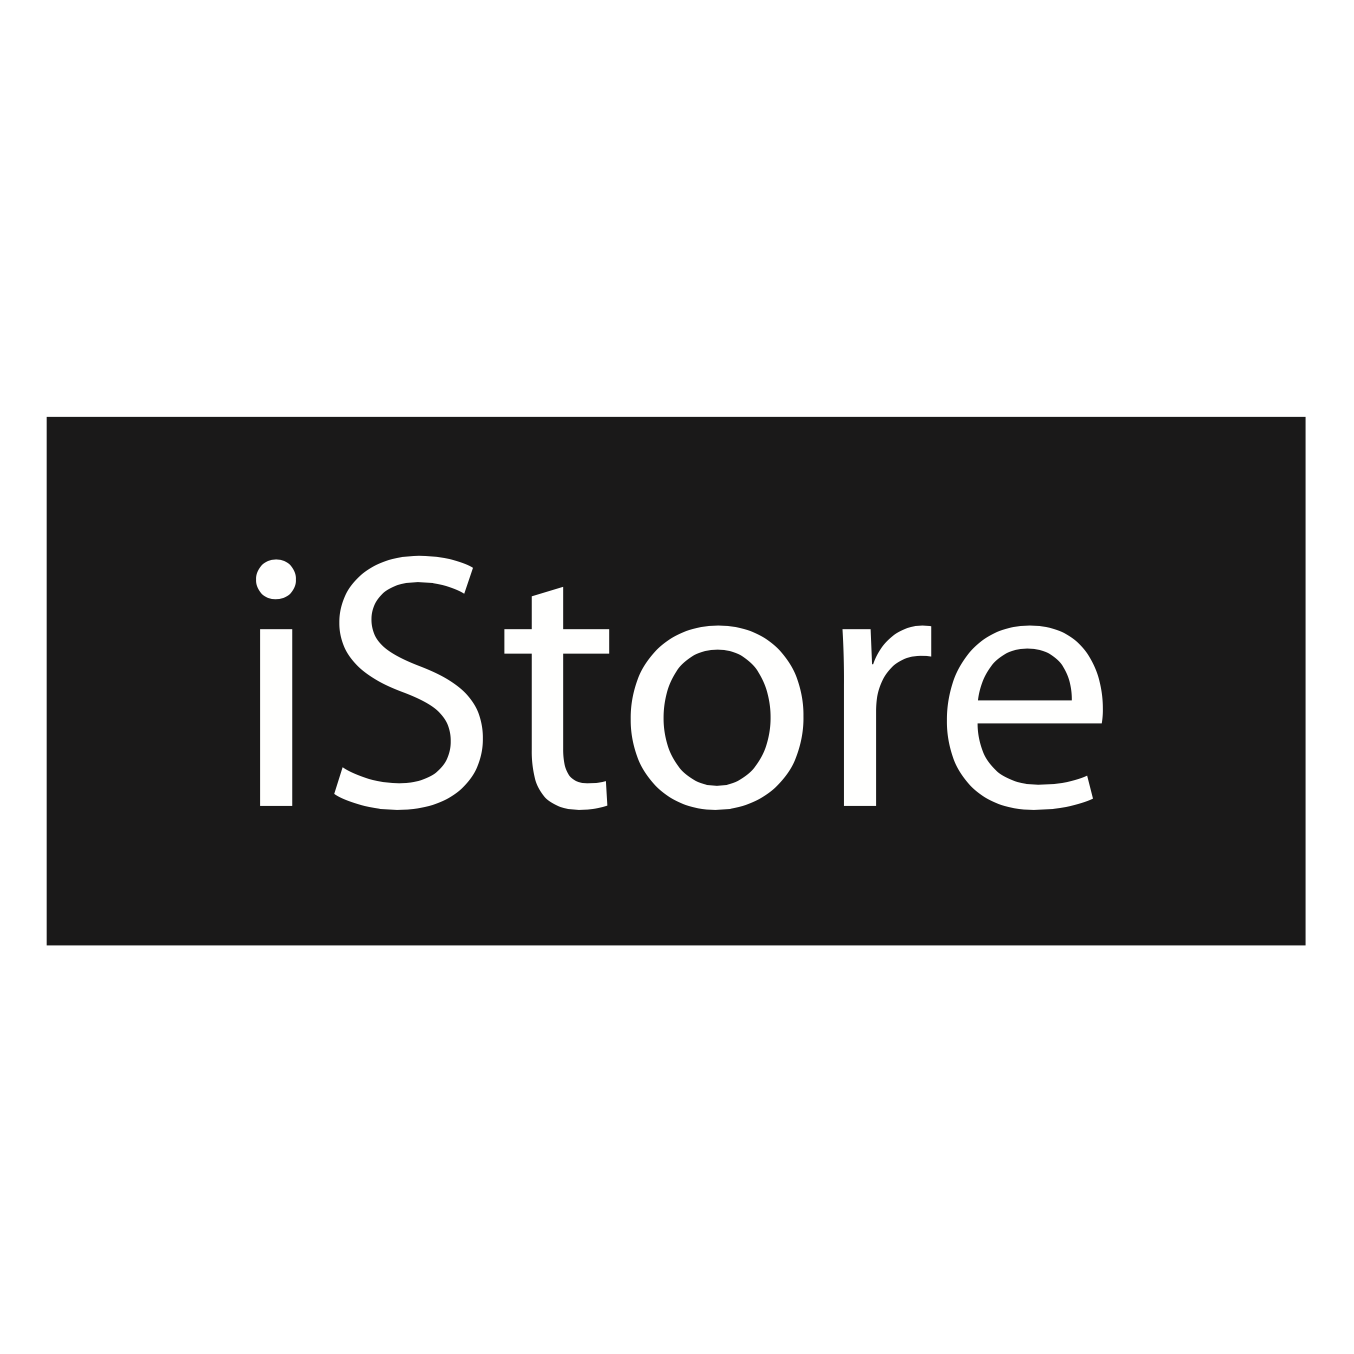 Do you want to know about iStore Demo Units?